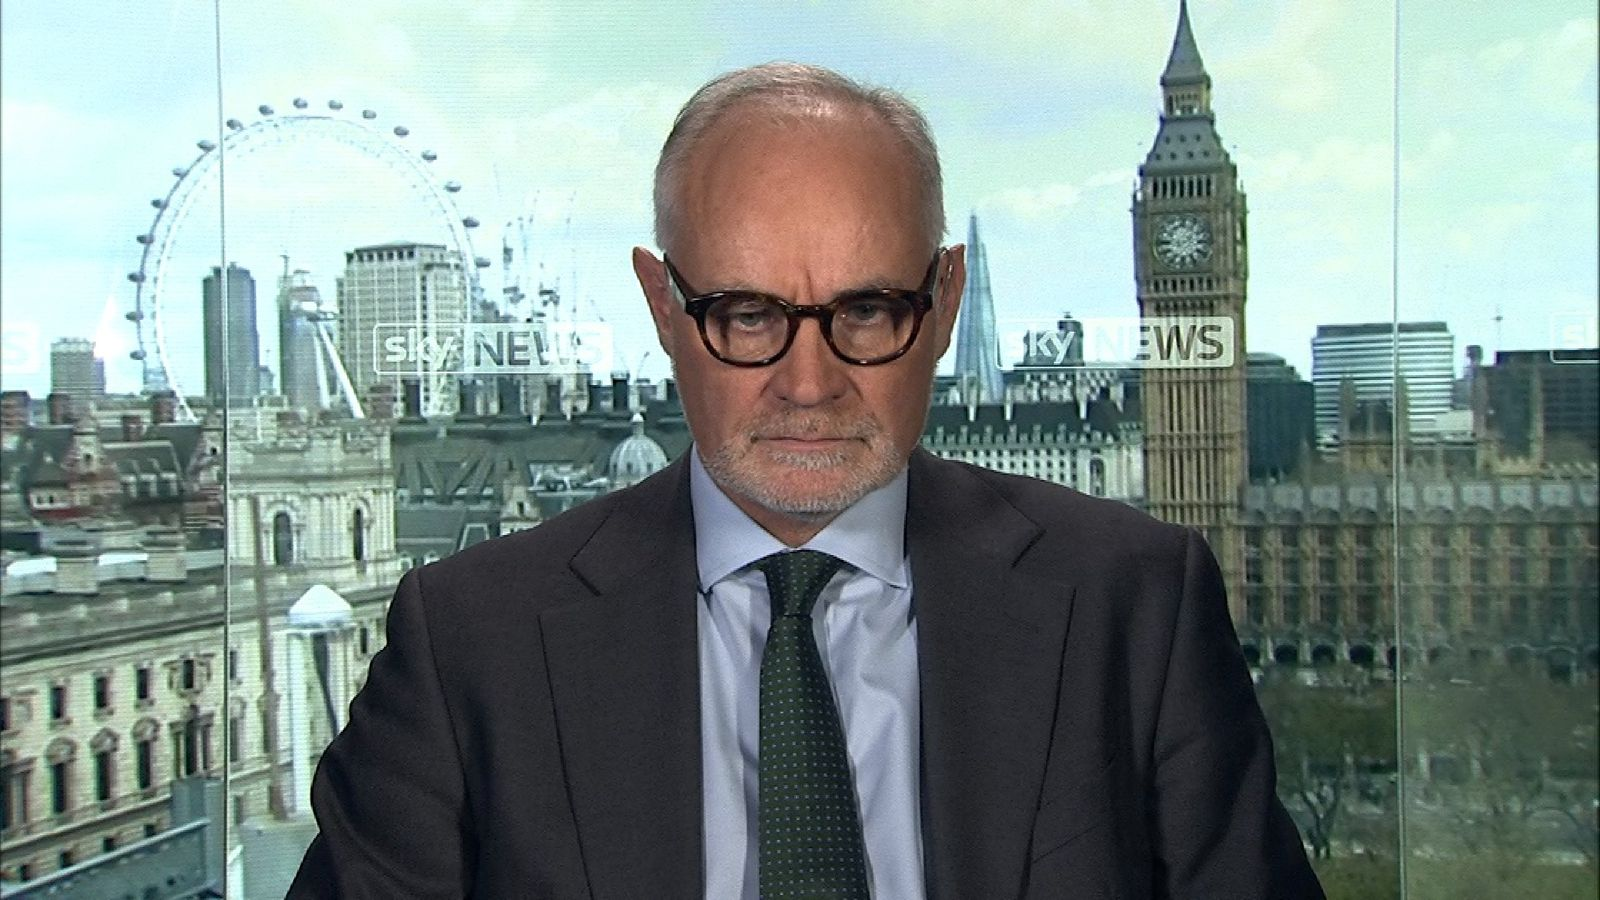 Crispin Blunt says Jeremy Corbyn cannot be trusted on defence